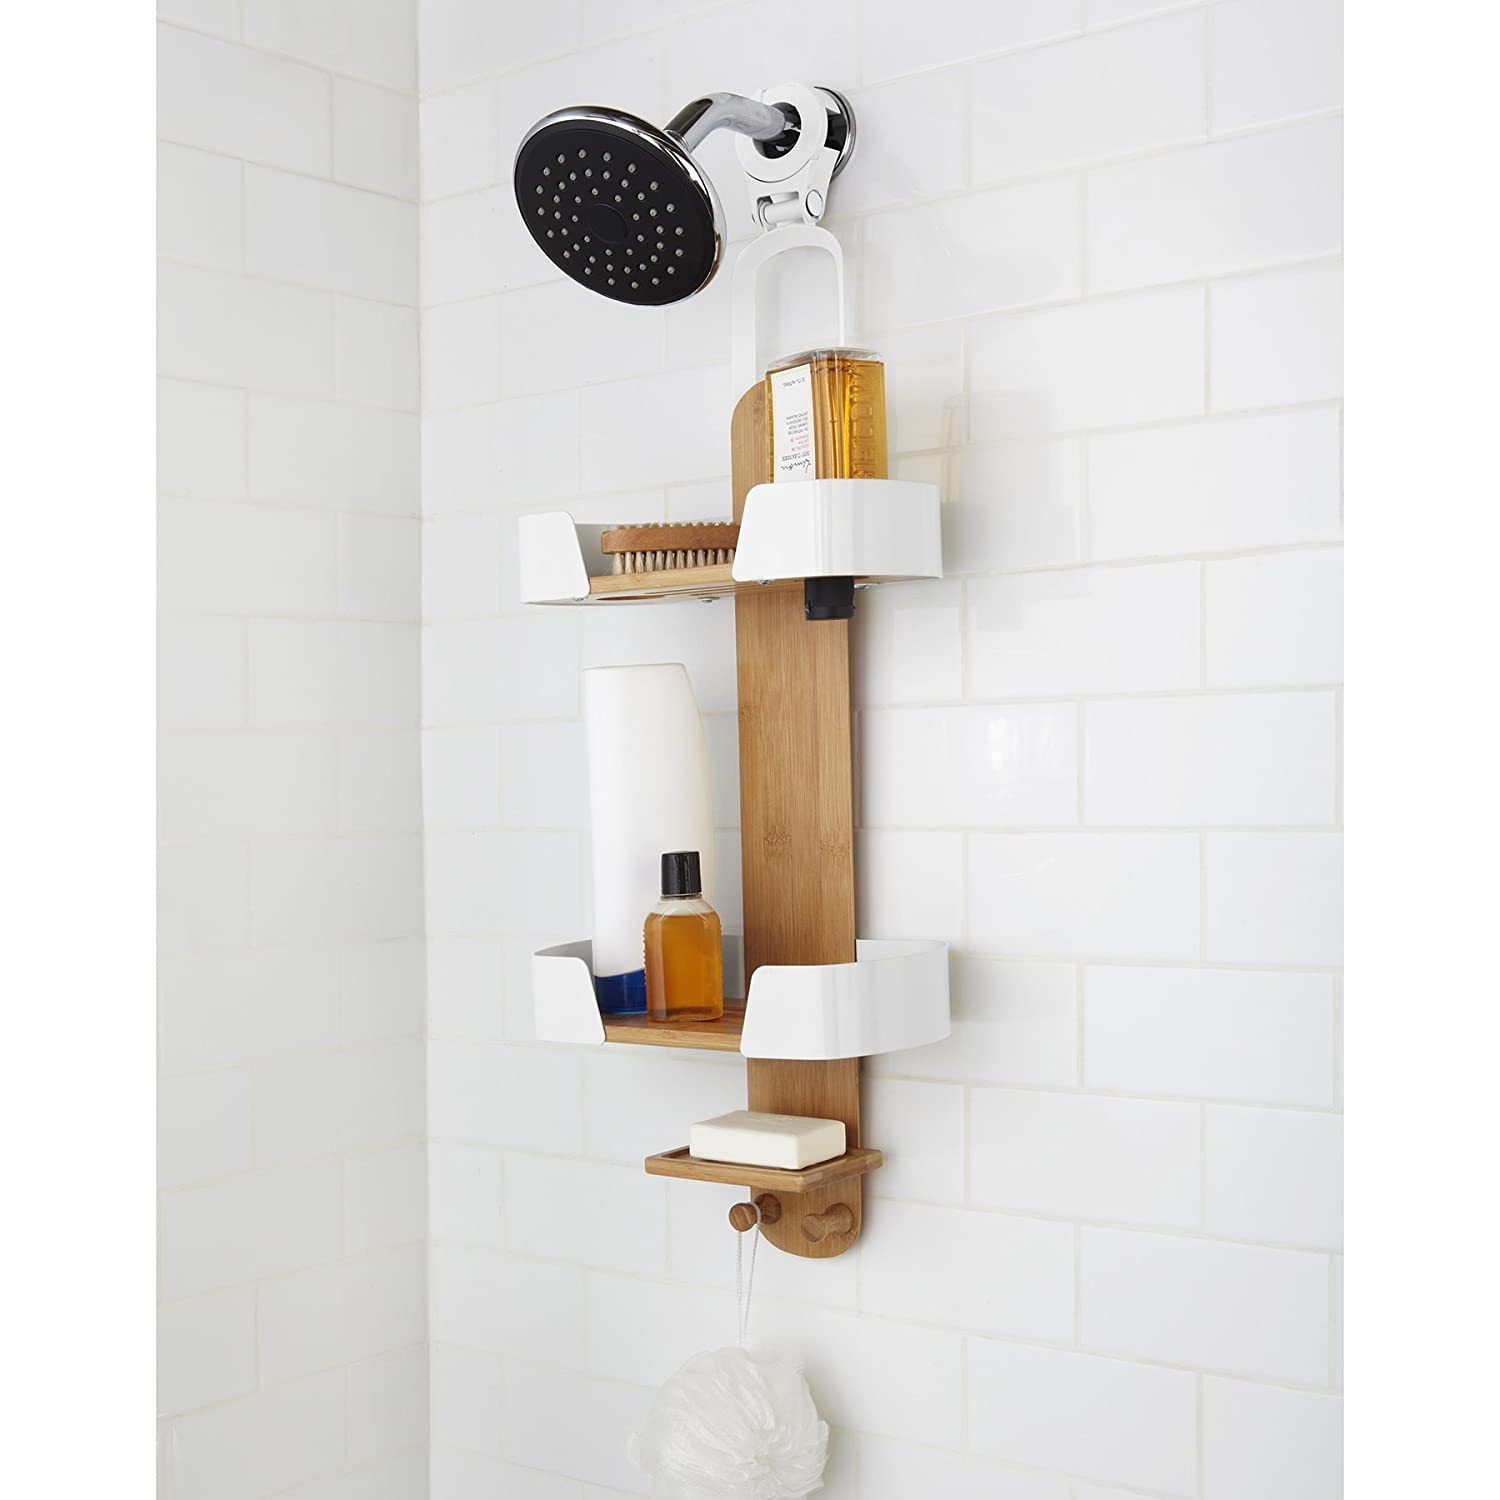 Amazon.com: Umbra Decker Shower Caddy: Home & Kitchen